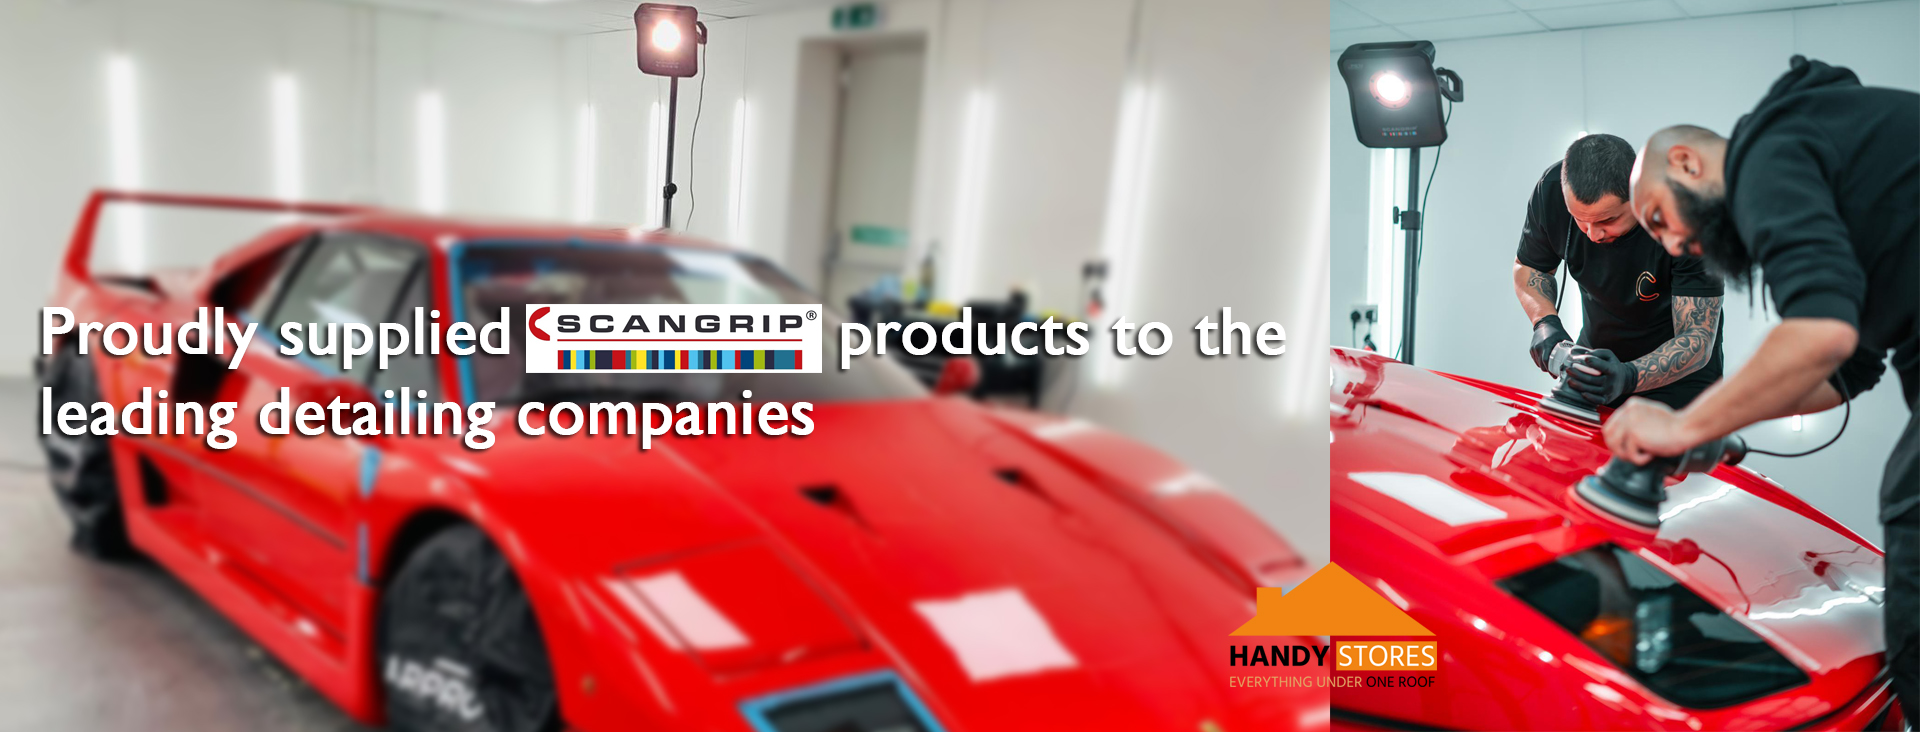 Handystores supplied scangrip products to the leading detailing companie in London